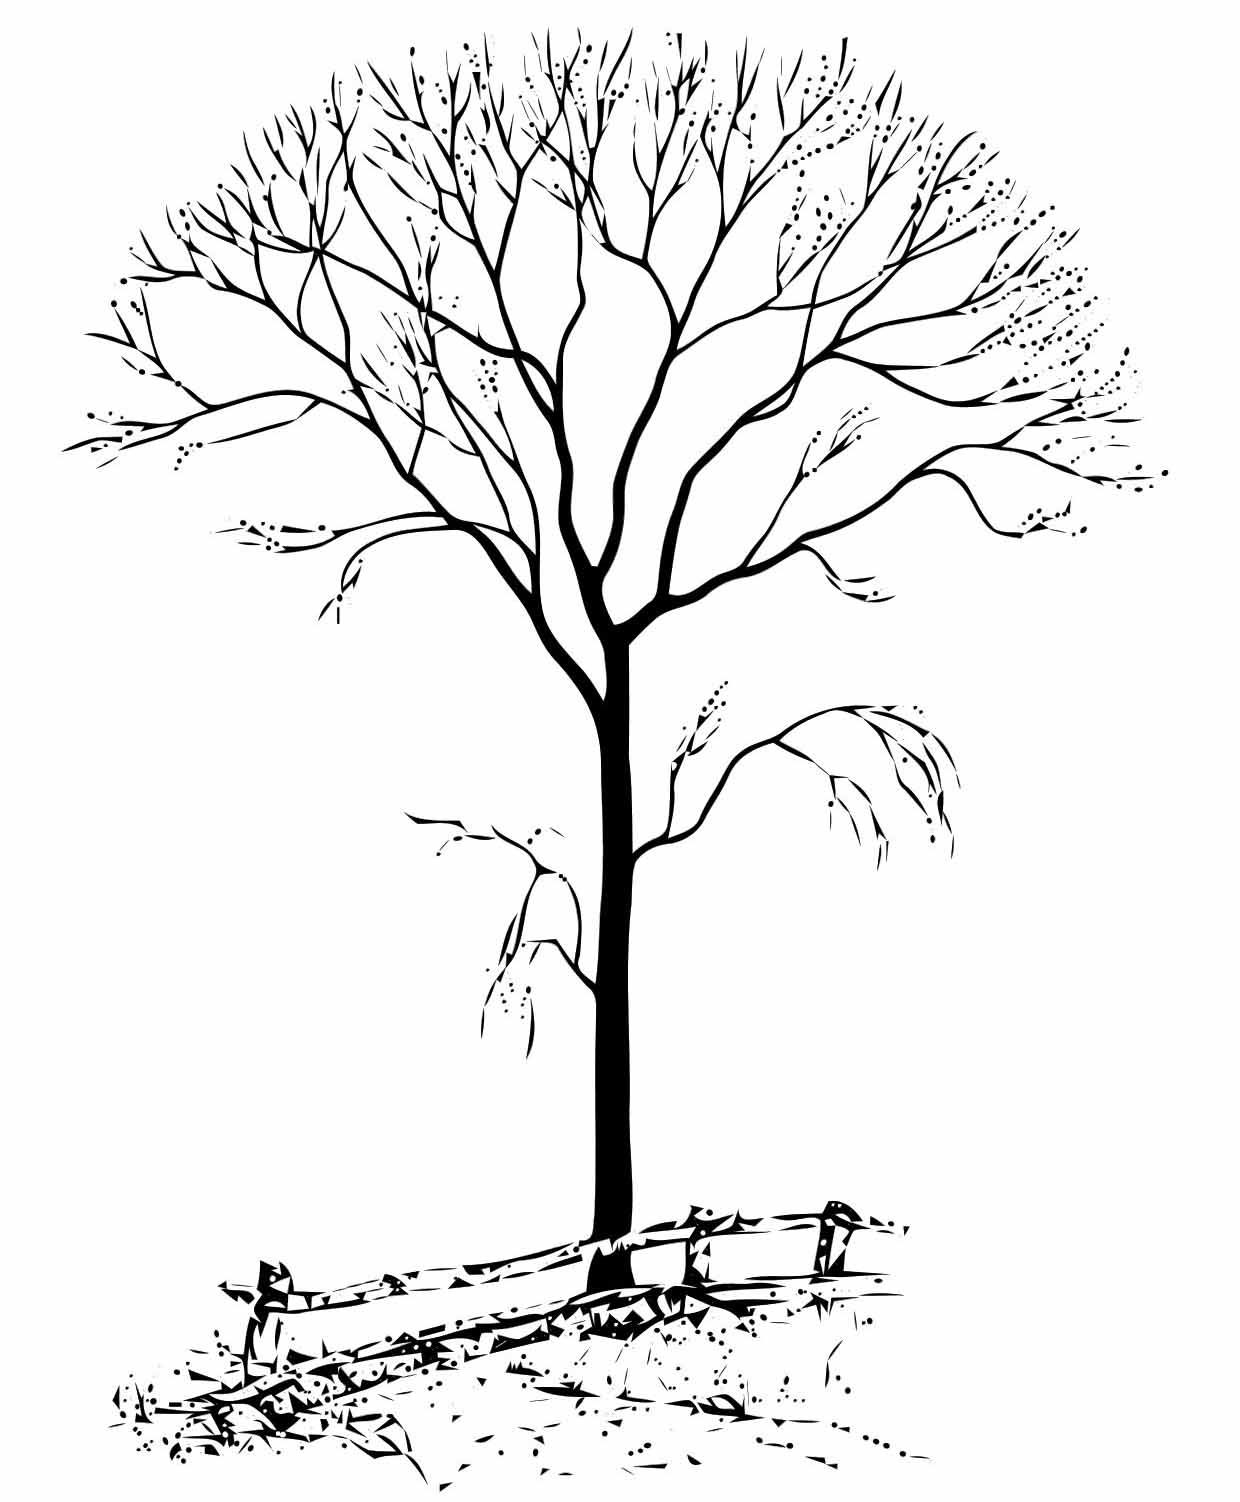 fall tree coloring page bing images - Birch Tree Branches Coloring Pages